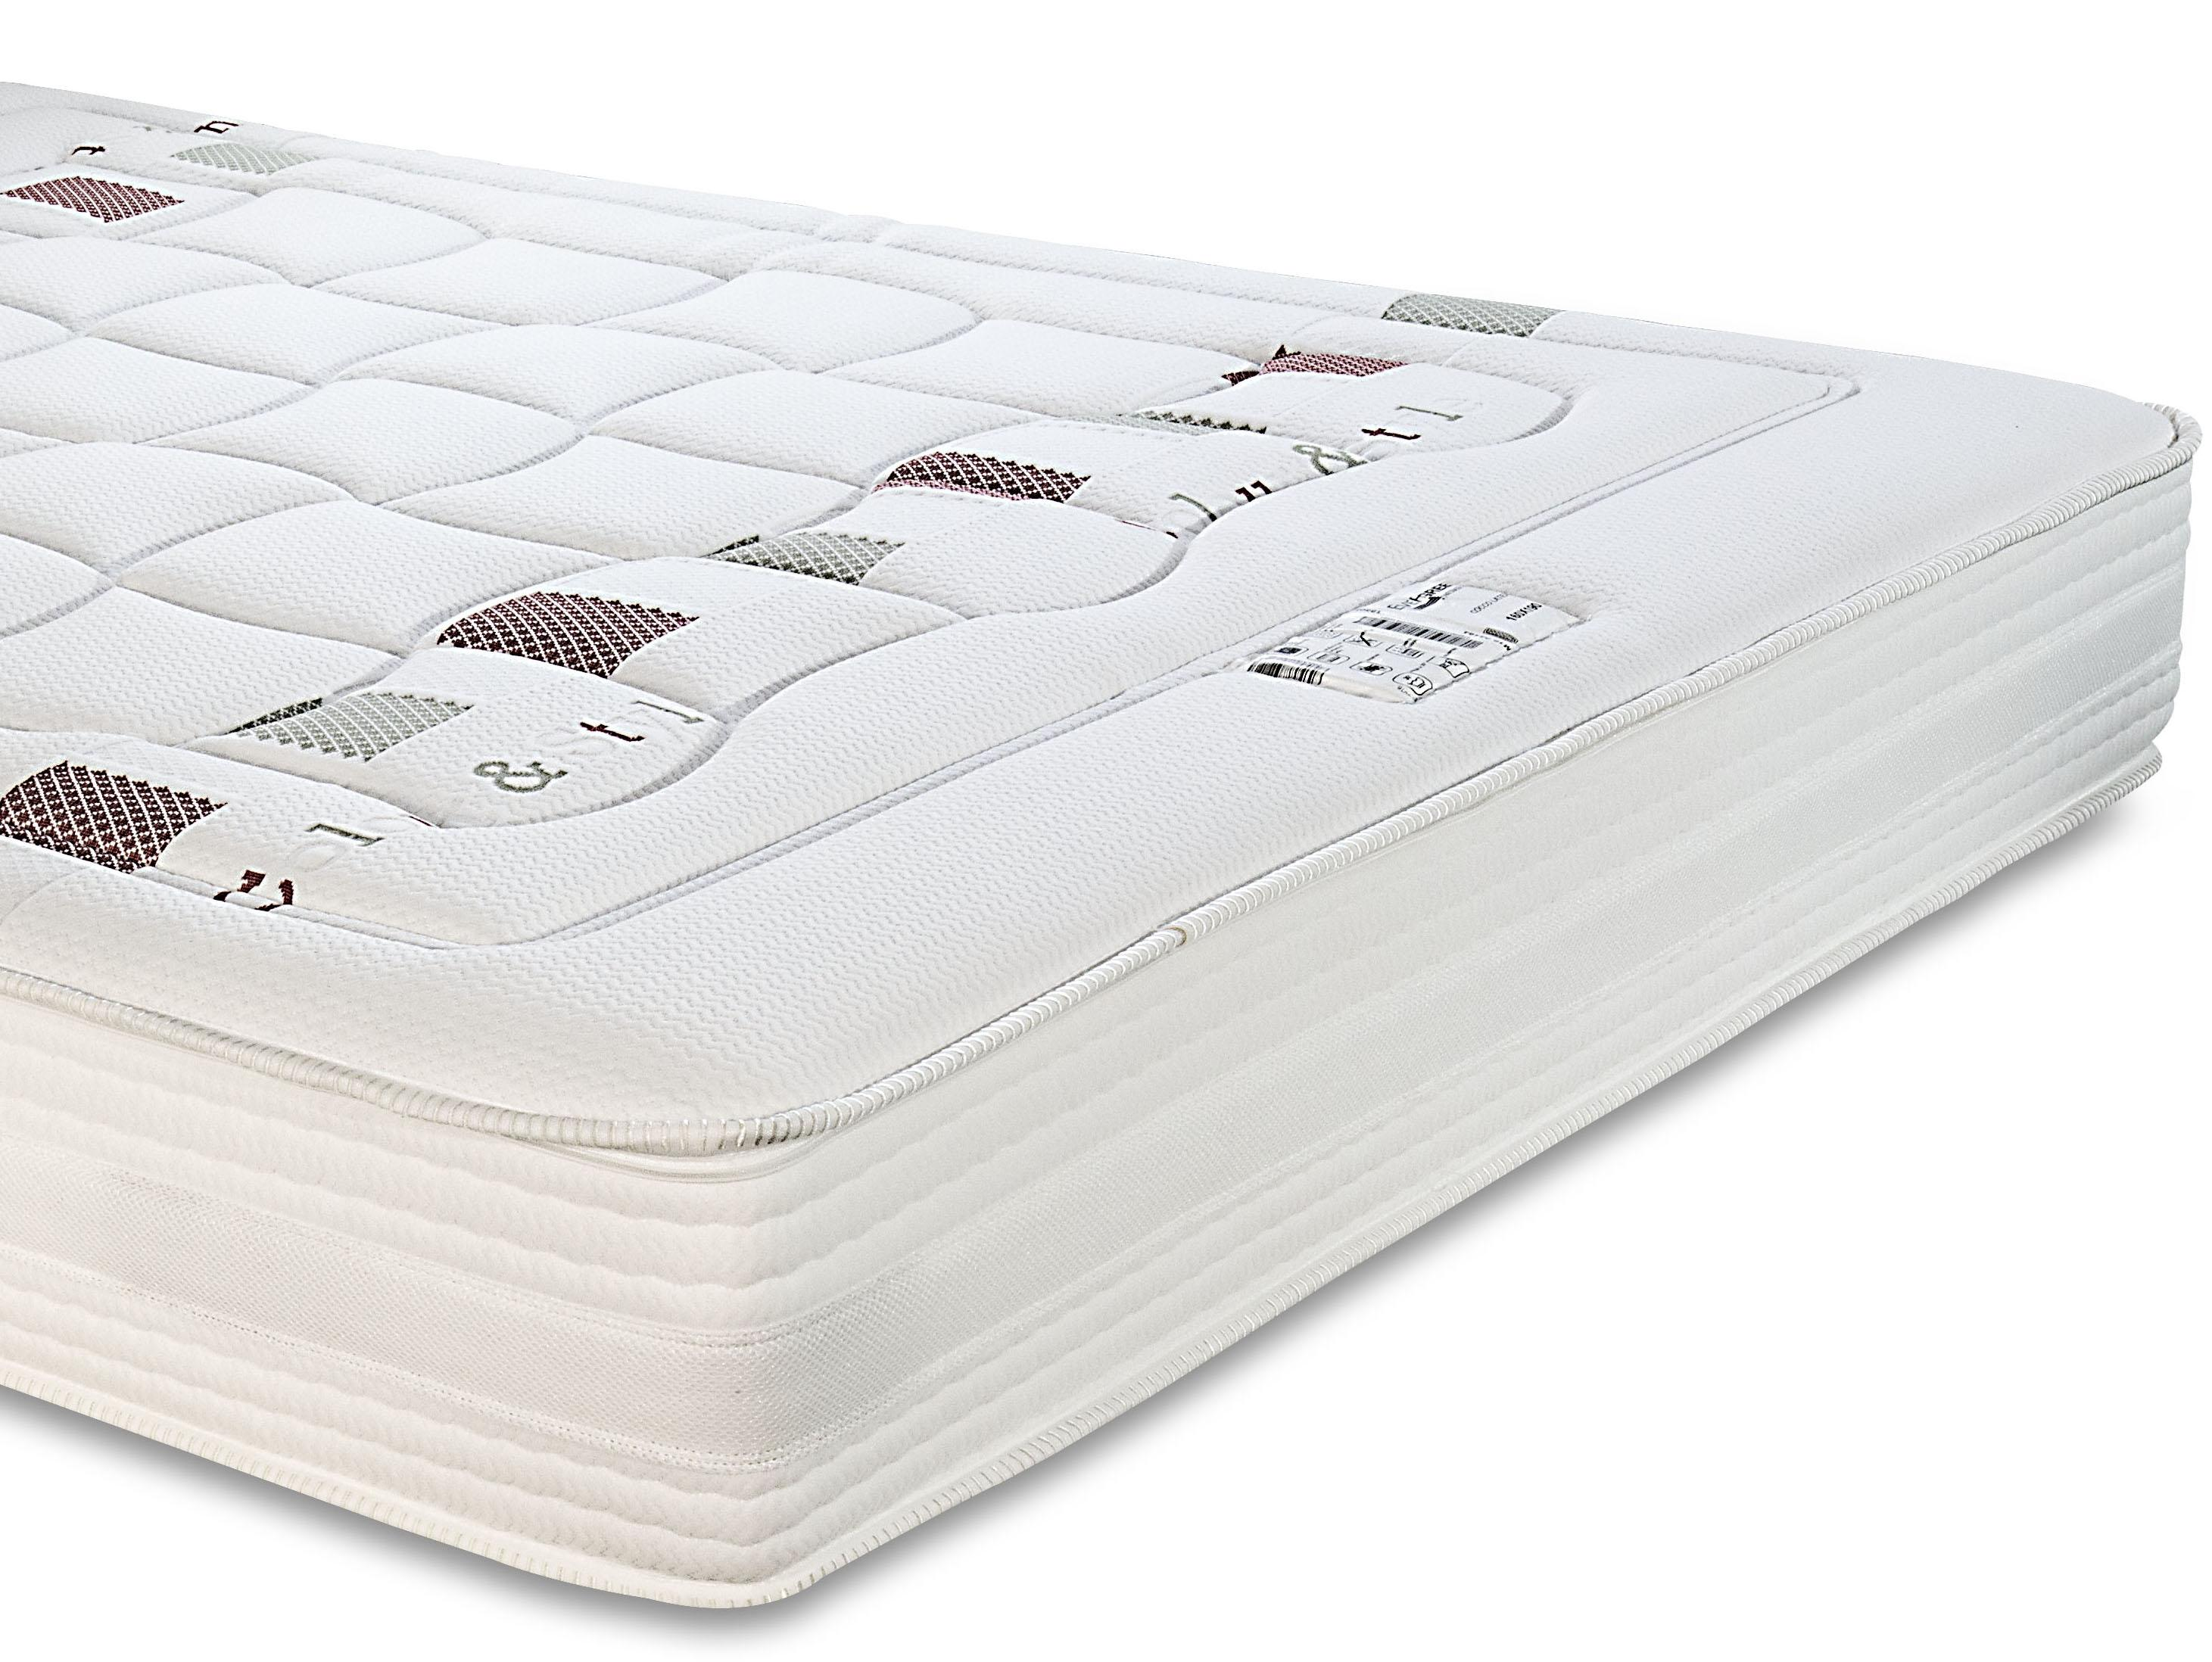 matelas latex et fibre de coco naturel cocco latex. Black Bedroom Furniture Sets. Home Design Ideas